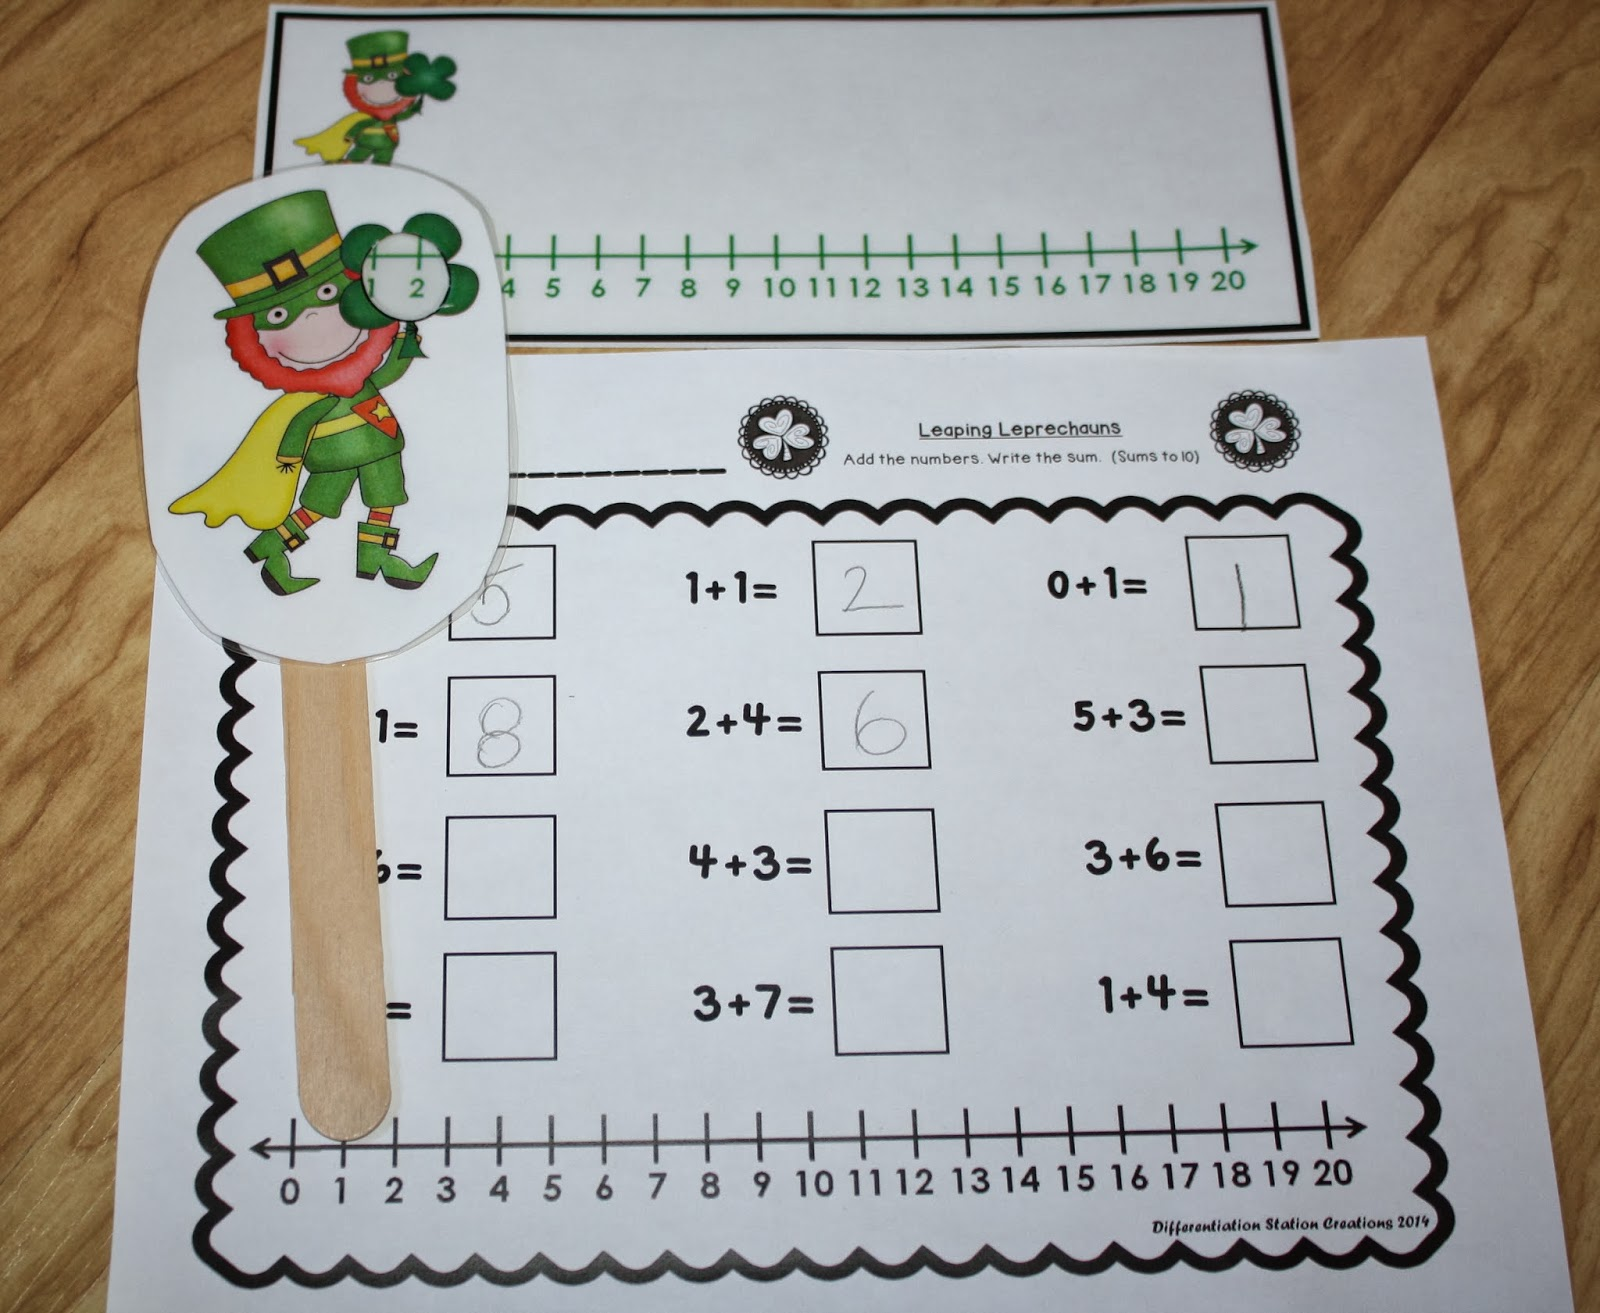 Differentiation Station Creations Leaping Leprechauns Freebie